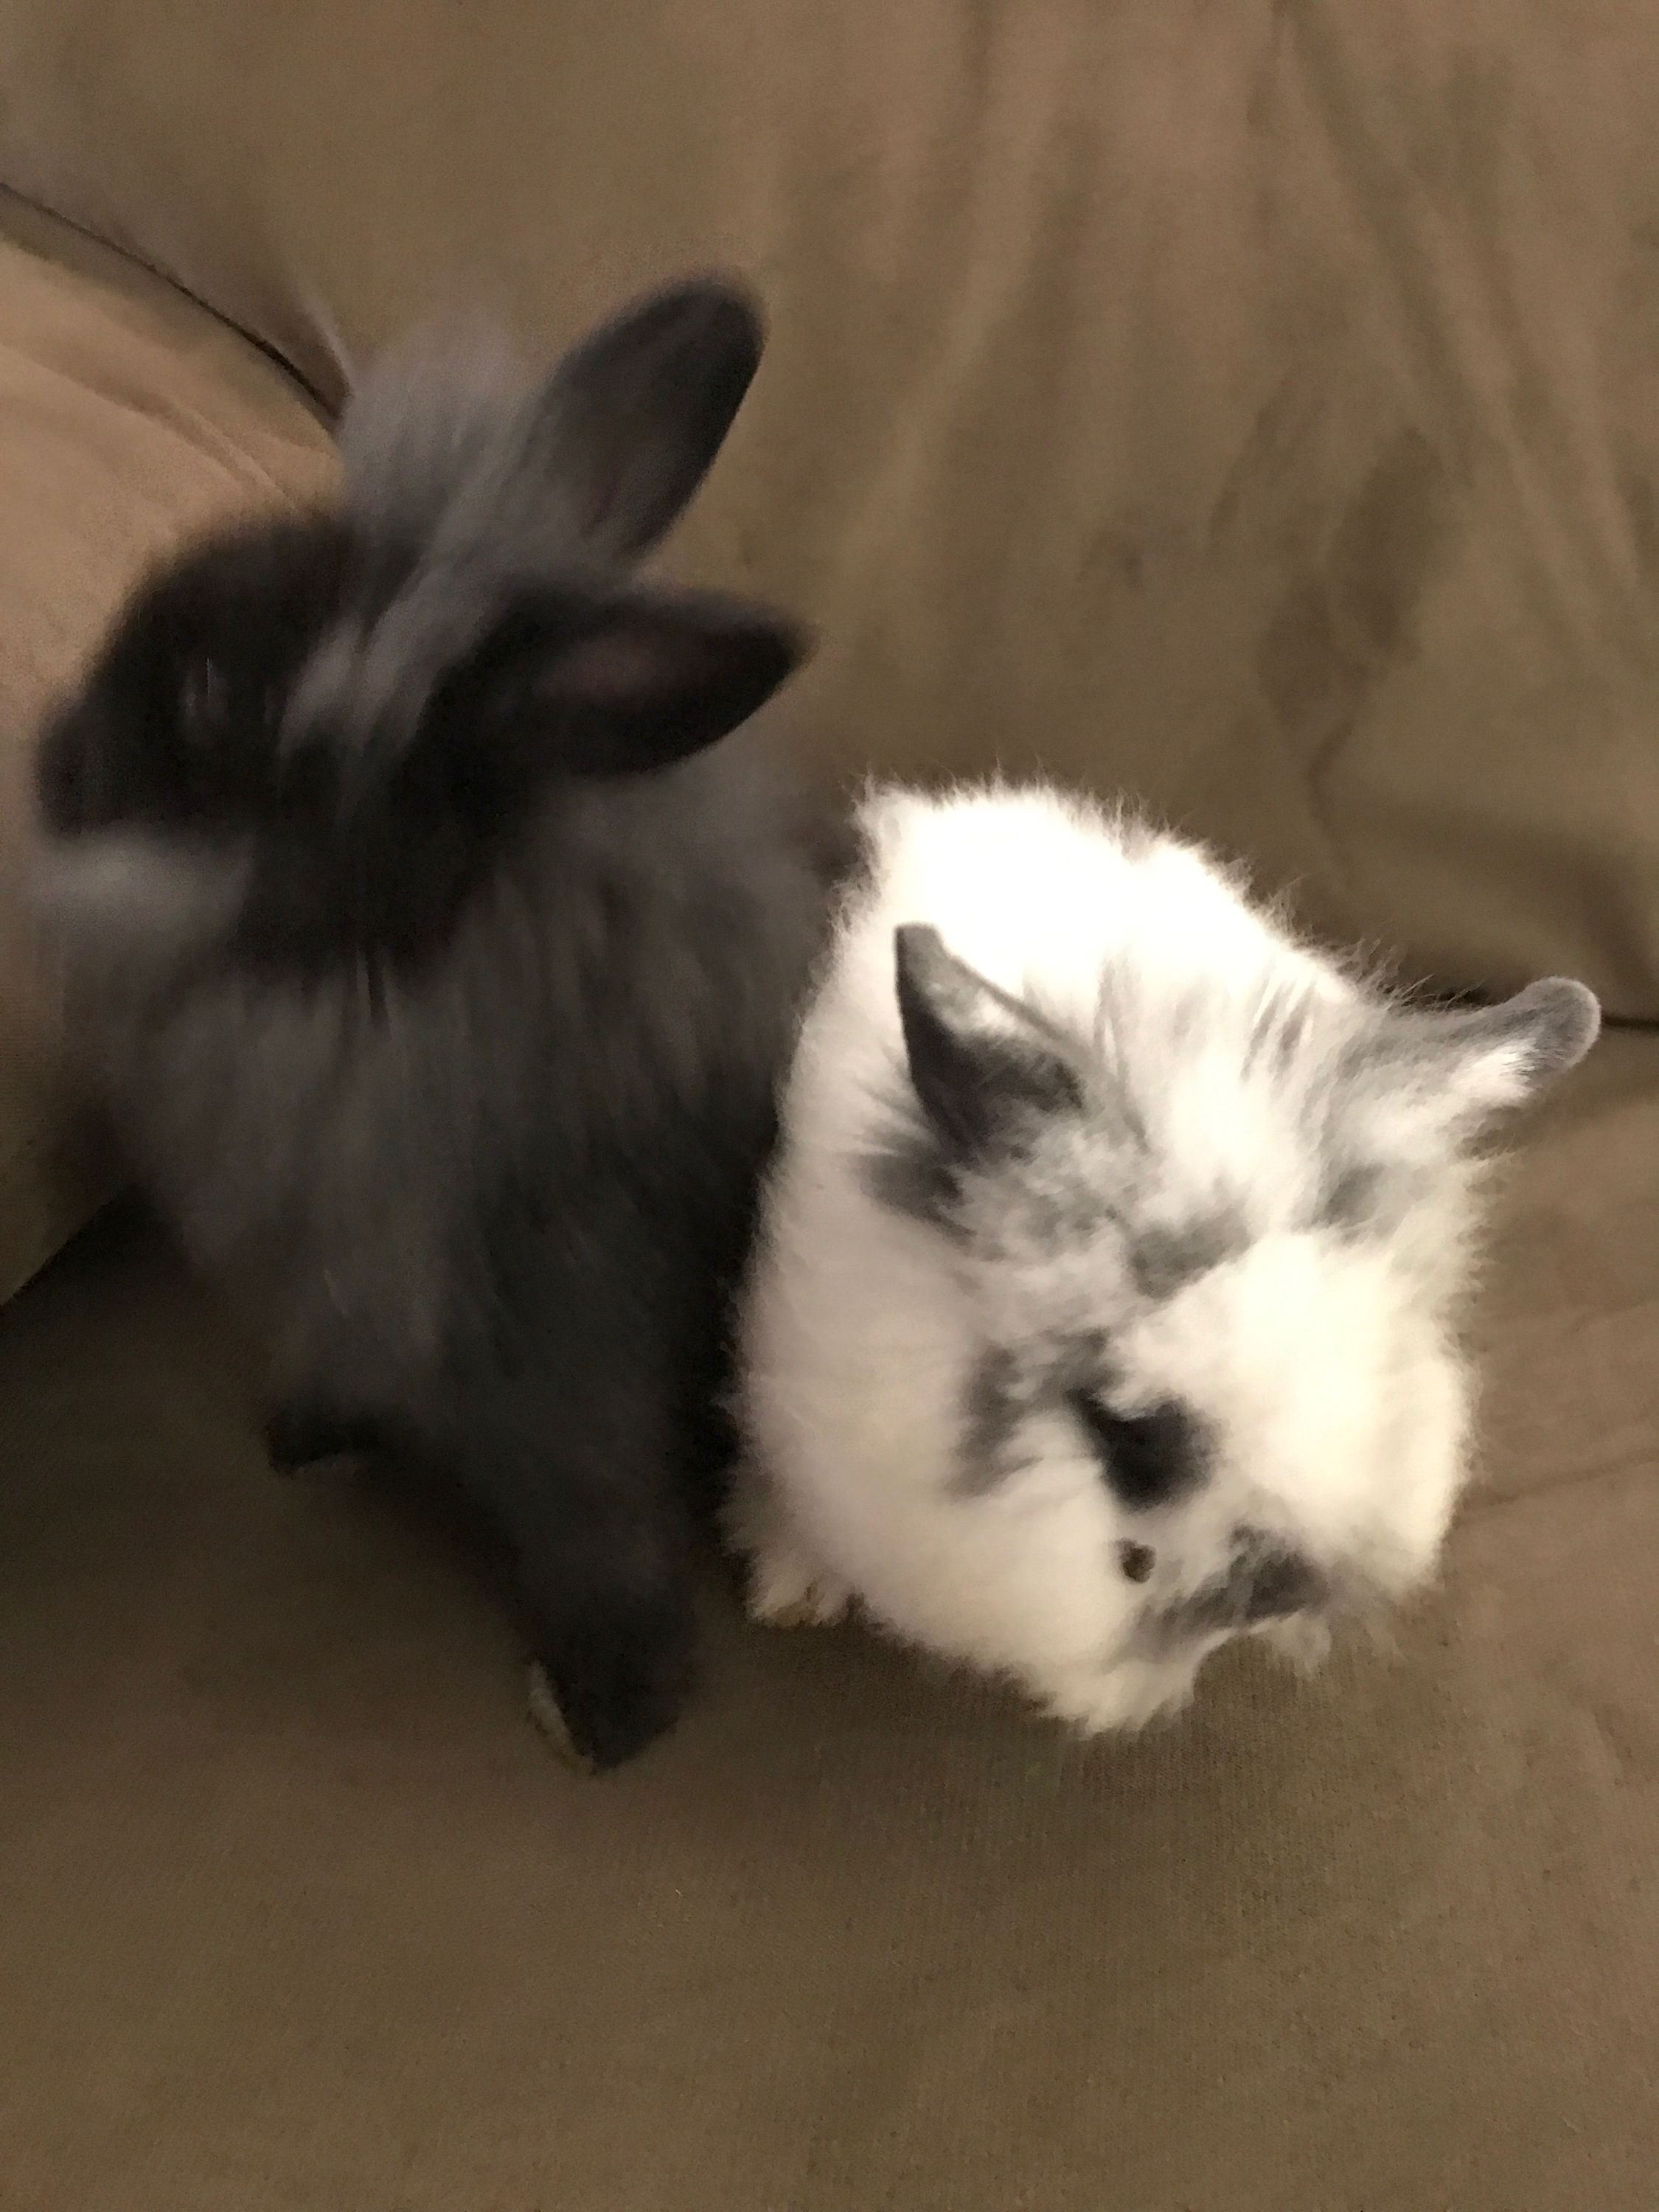 2 Baby Rabbits For Sale : rabbits, Bunnies, Sale., These, Their, Older, Siblings., Dwarf, Lionhead, Bunnies., Designer, Rabbits., Animals,, Bunnies,, Bunny